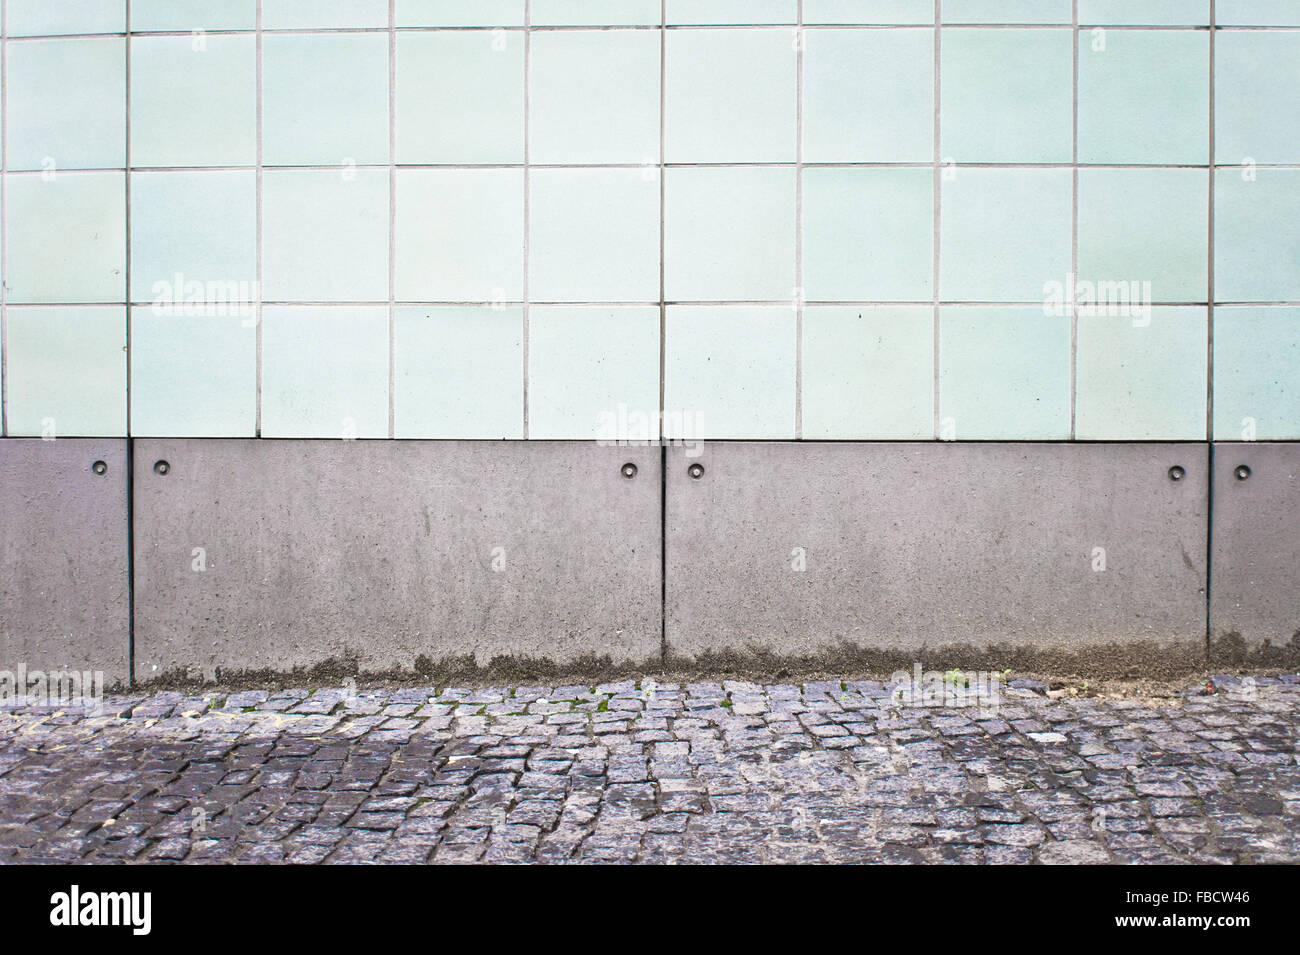 Part of a white tiled wall on the exterior of an urban building - Stock Image